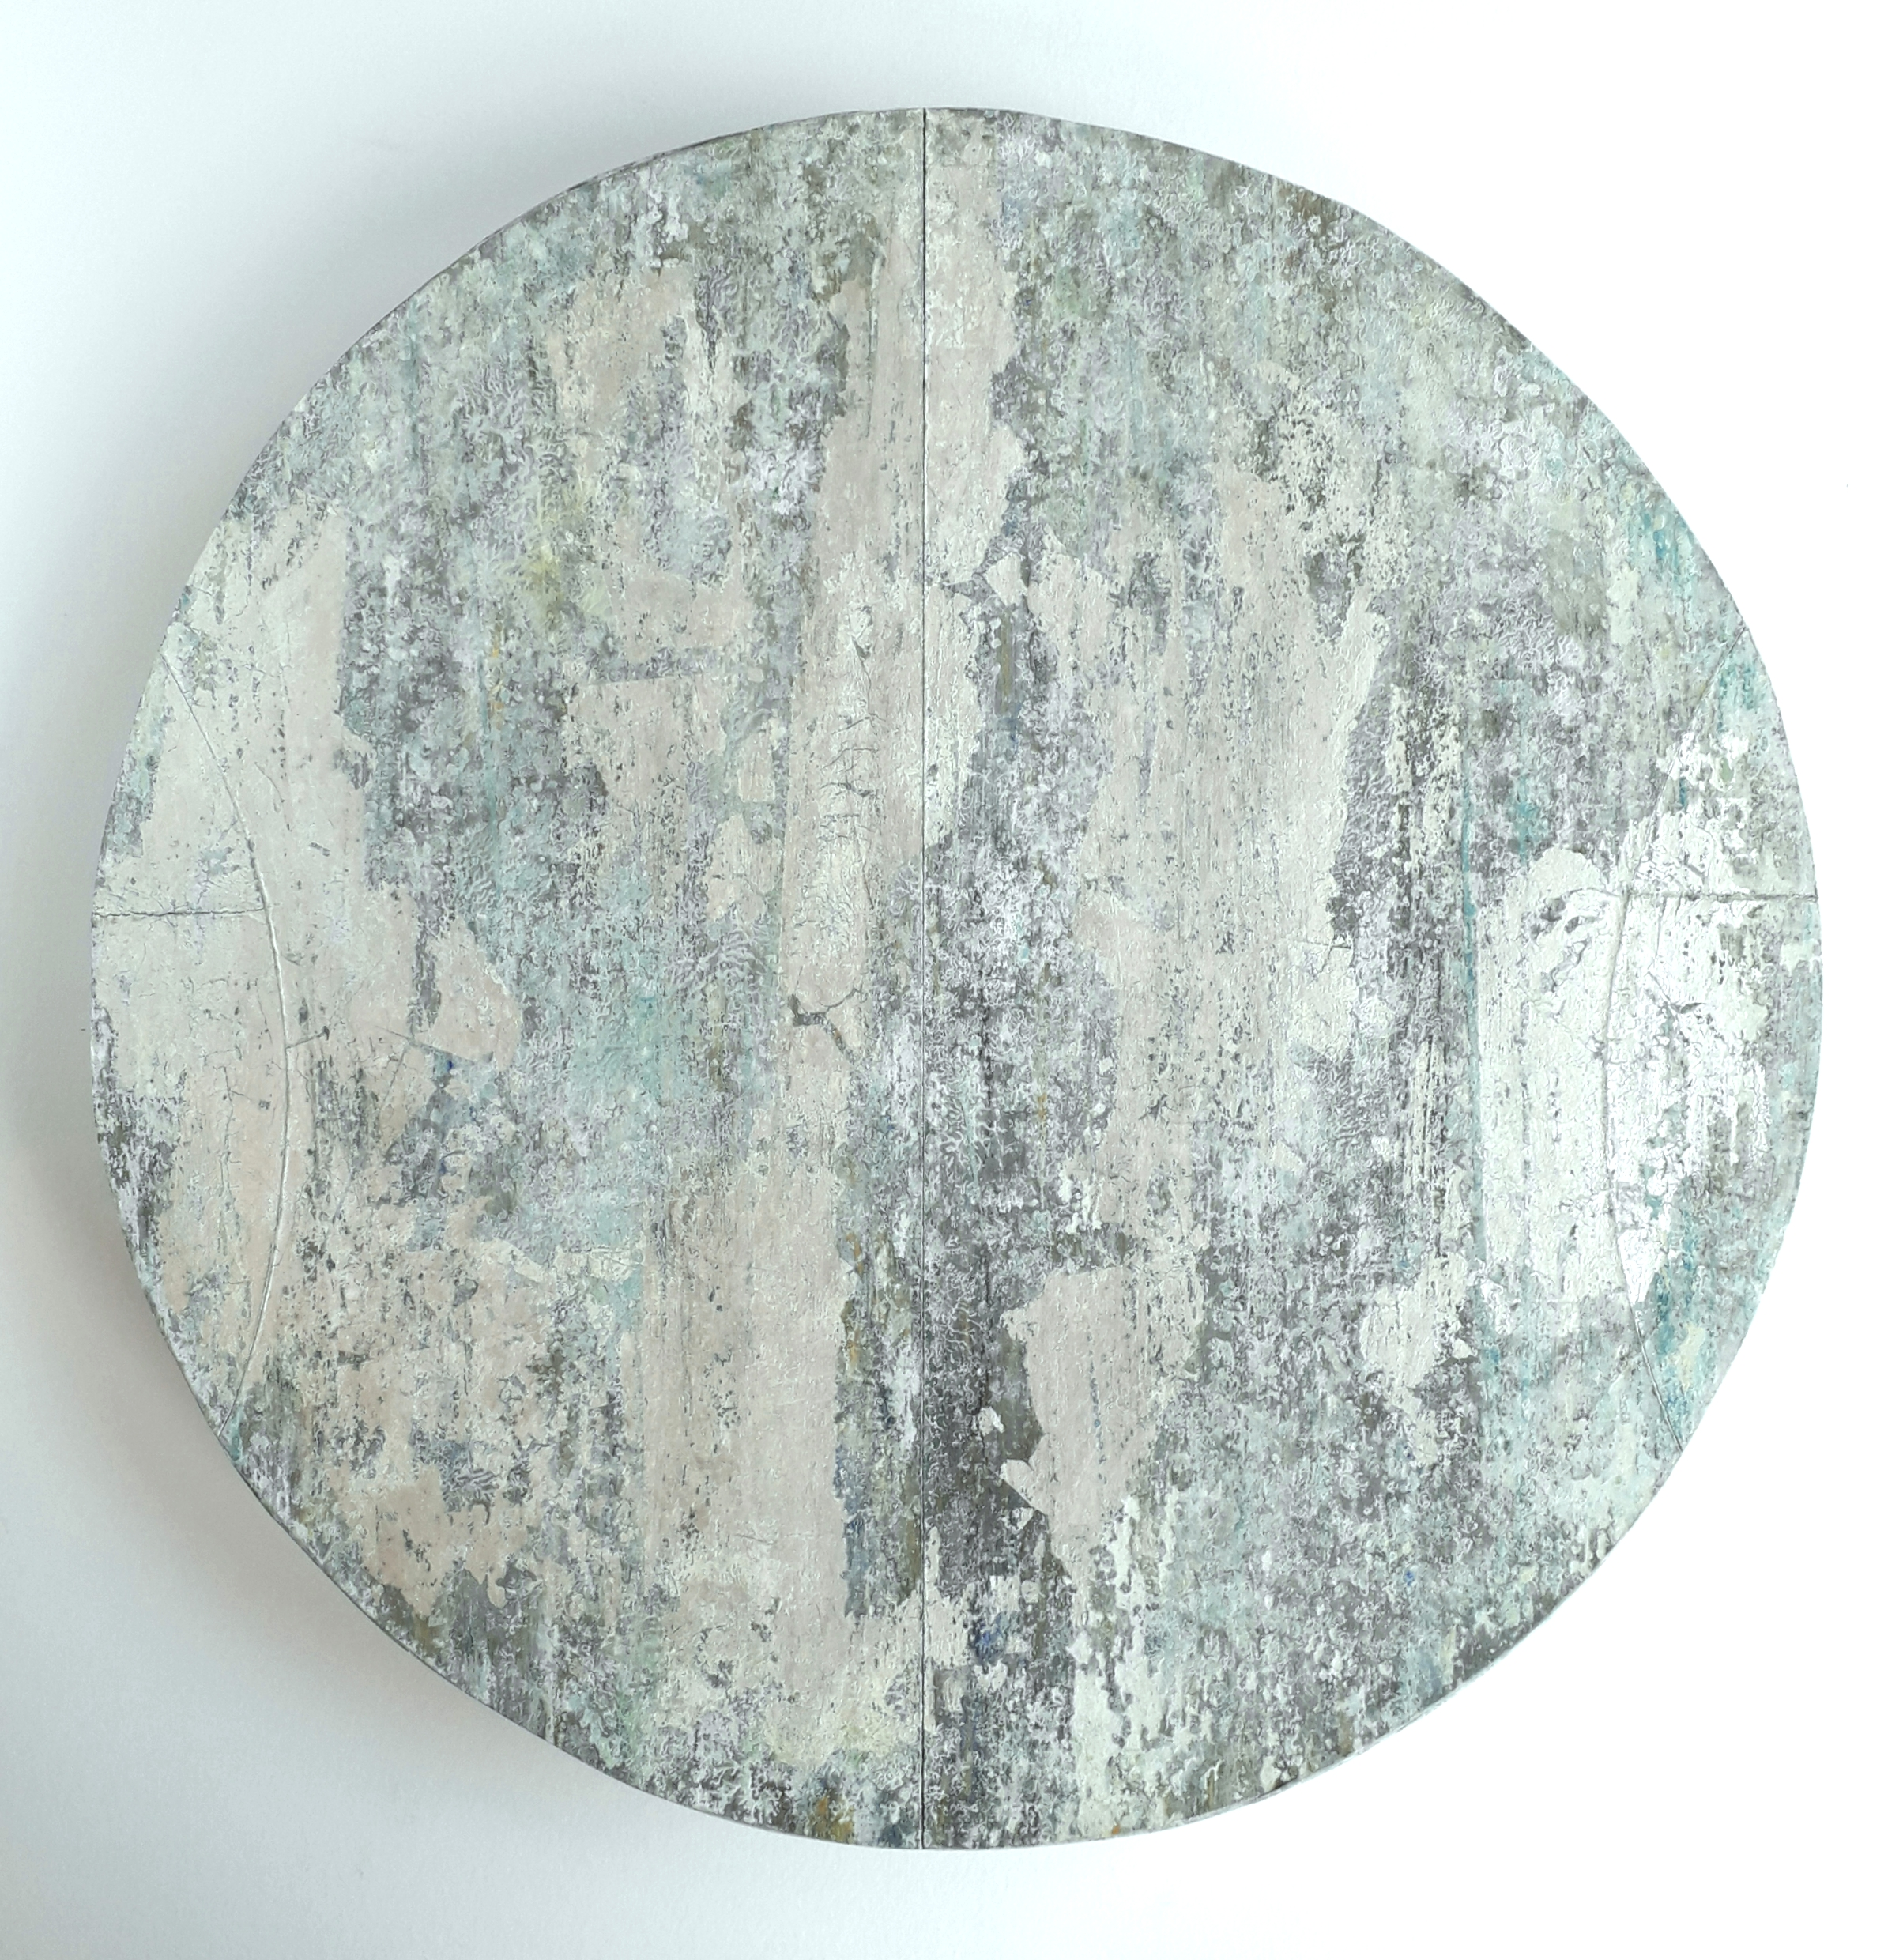 Artist: Alan McLeod  Title: Moon Disc  Size: 34 cm dia  Medium: Gouache and silver leaf  Price: £395   Buy Now